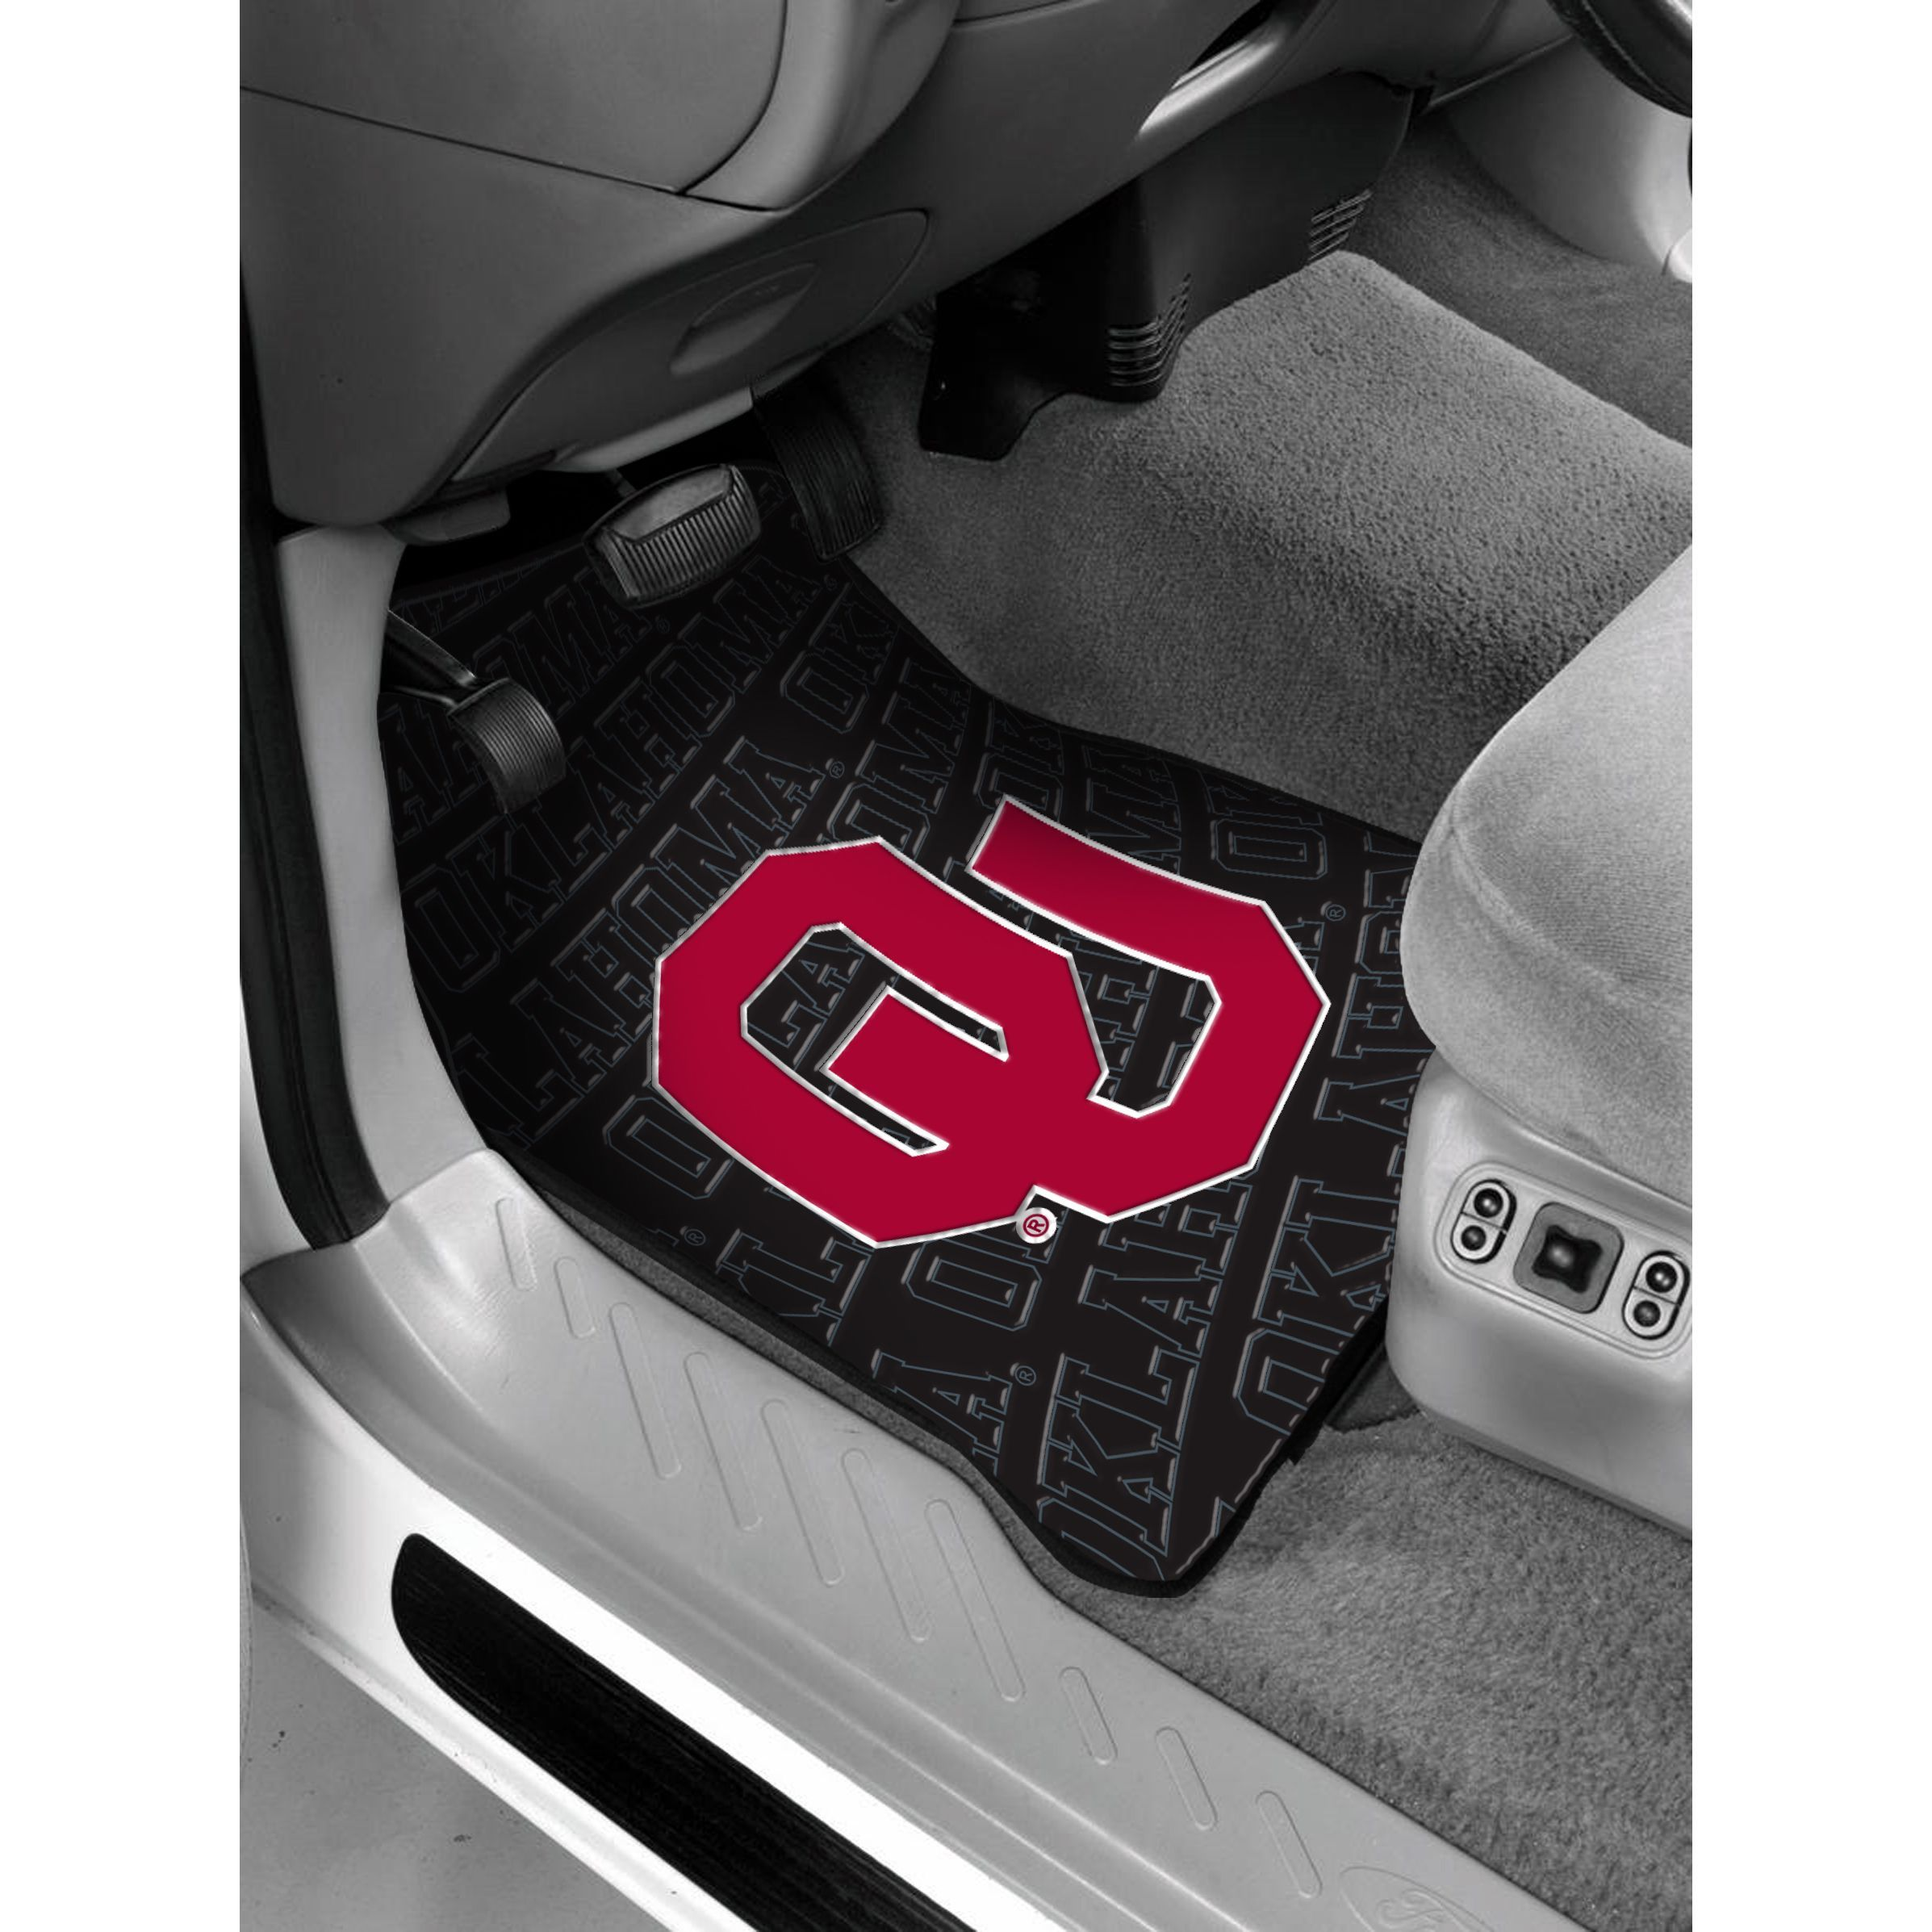 vw seat golf mat protectors rubber made bumper guards mats and boot dog for car onwards cars leon floor custom dividers